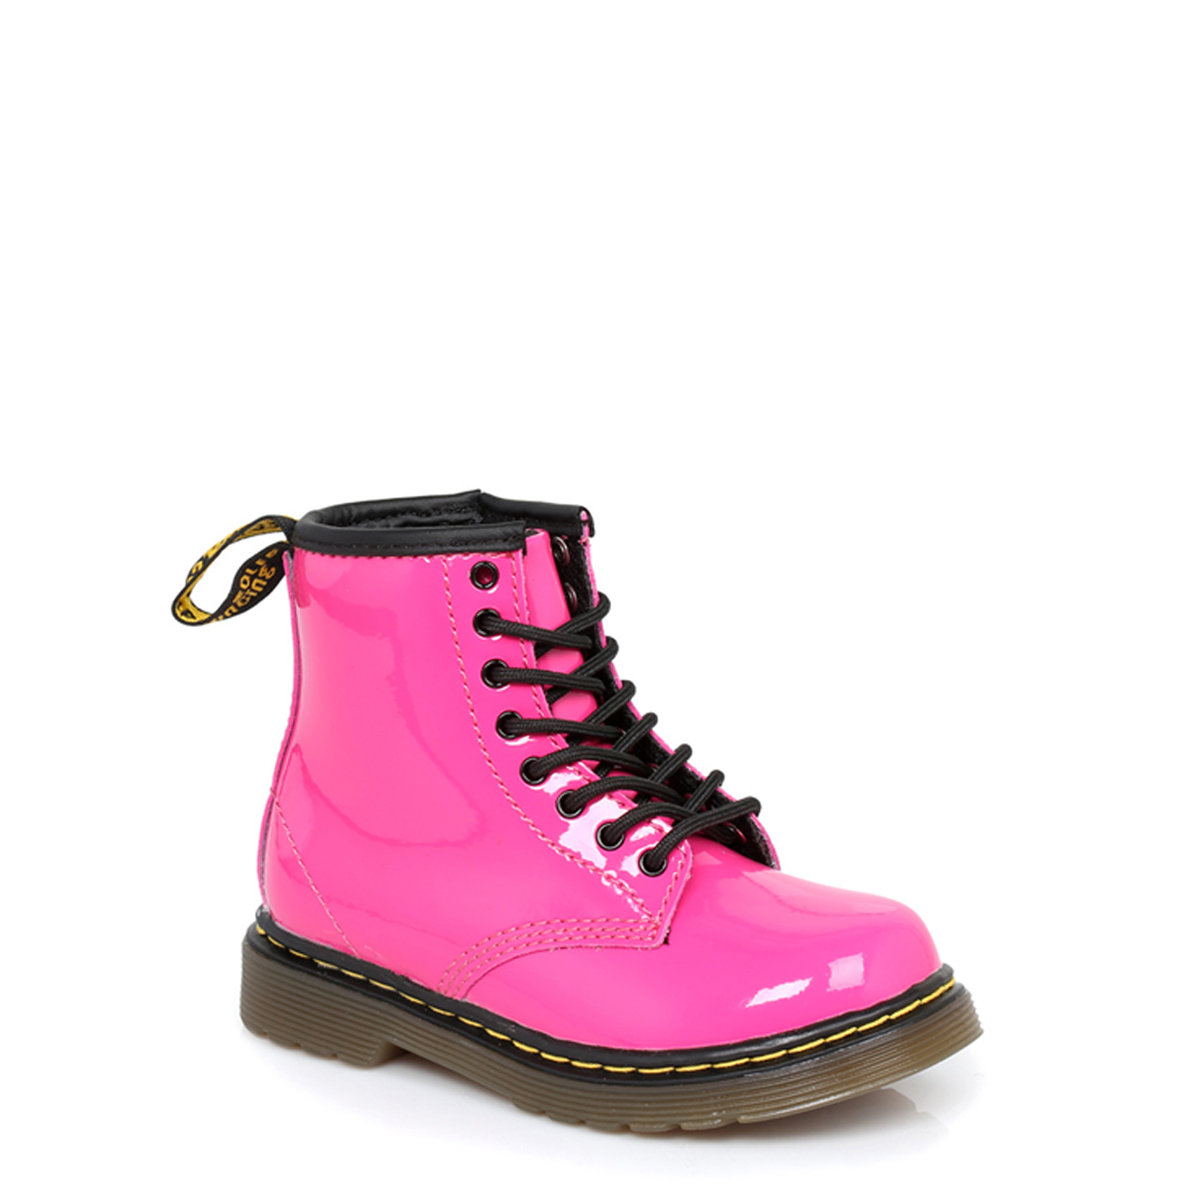 Pink Patent Leather Infant Shoes